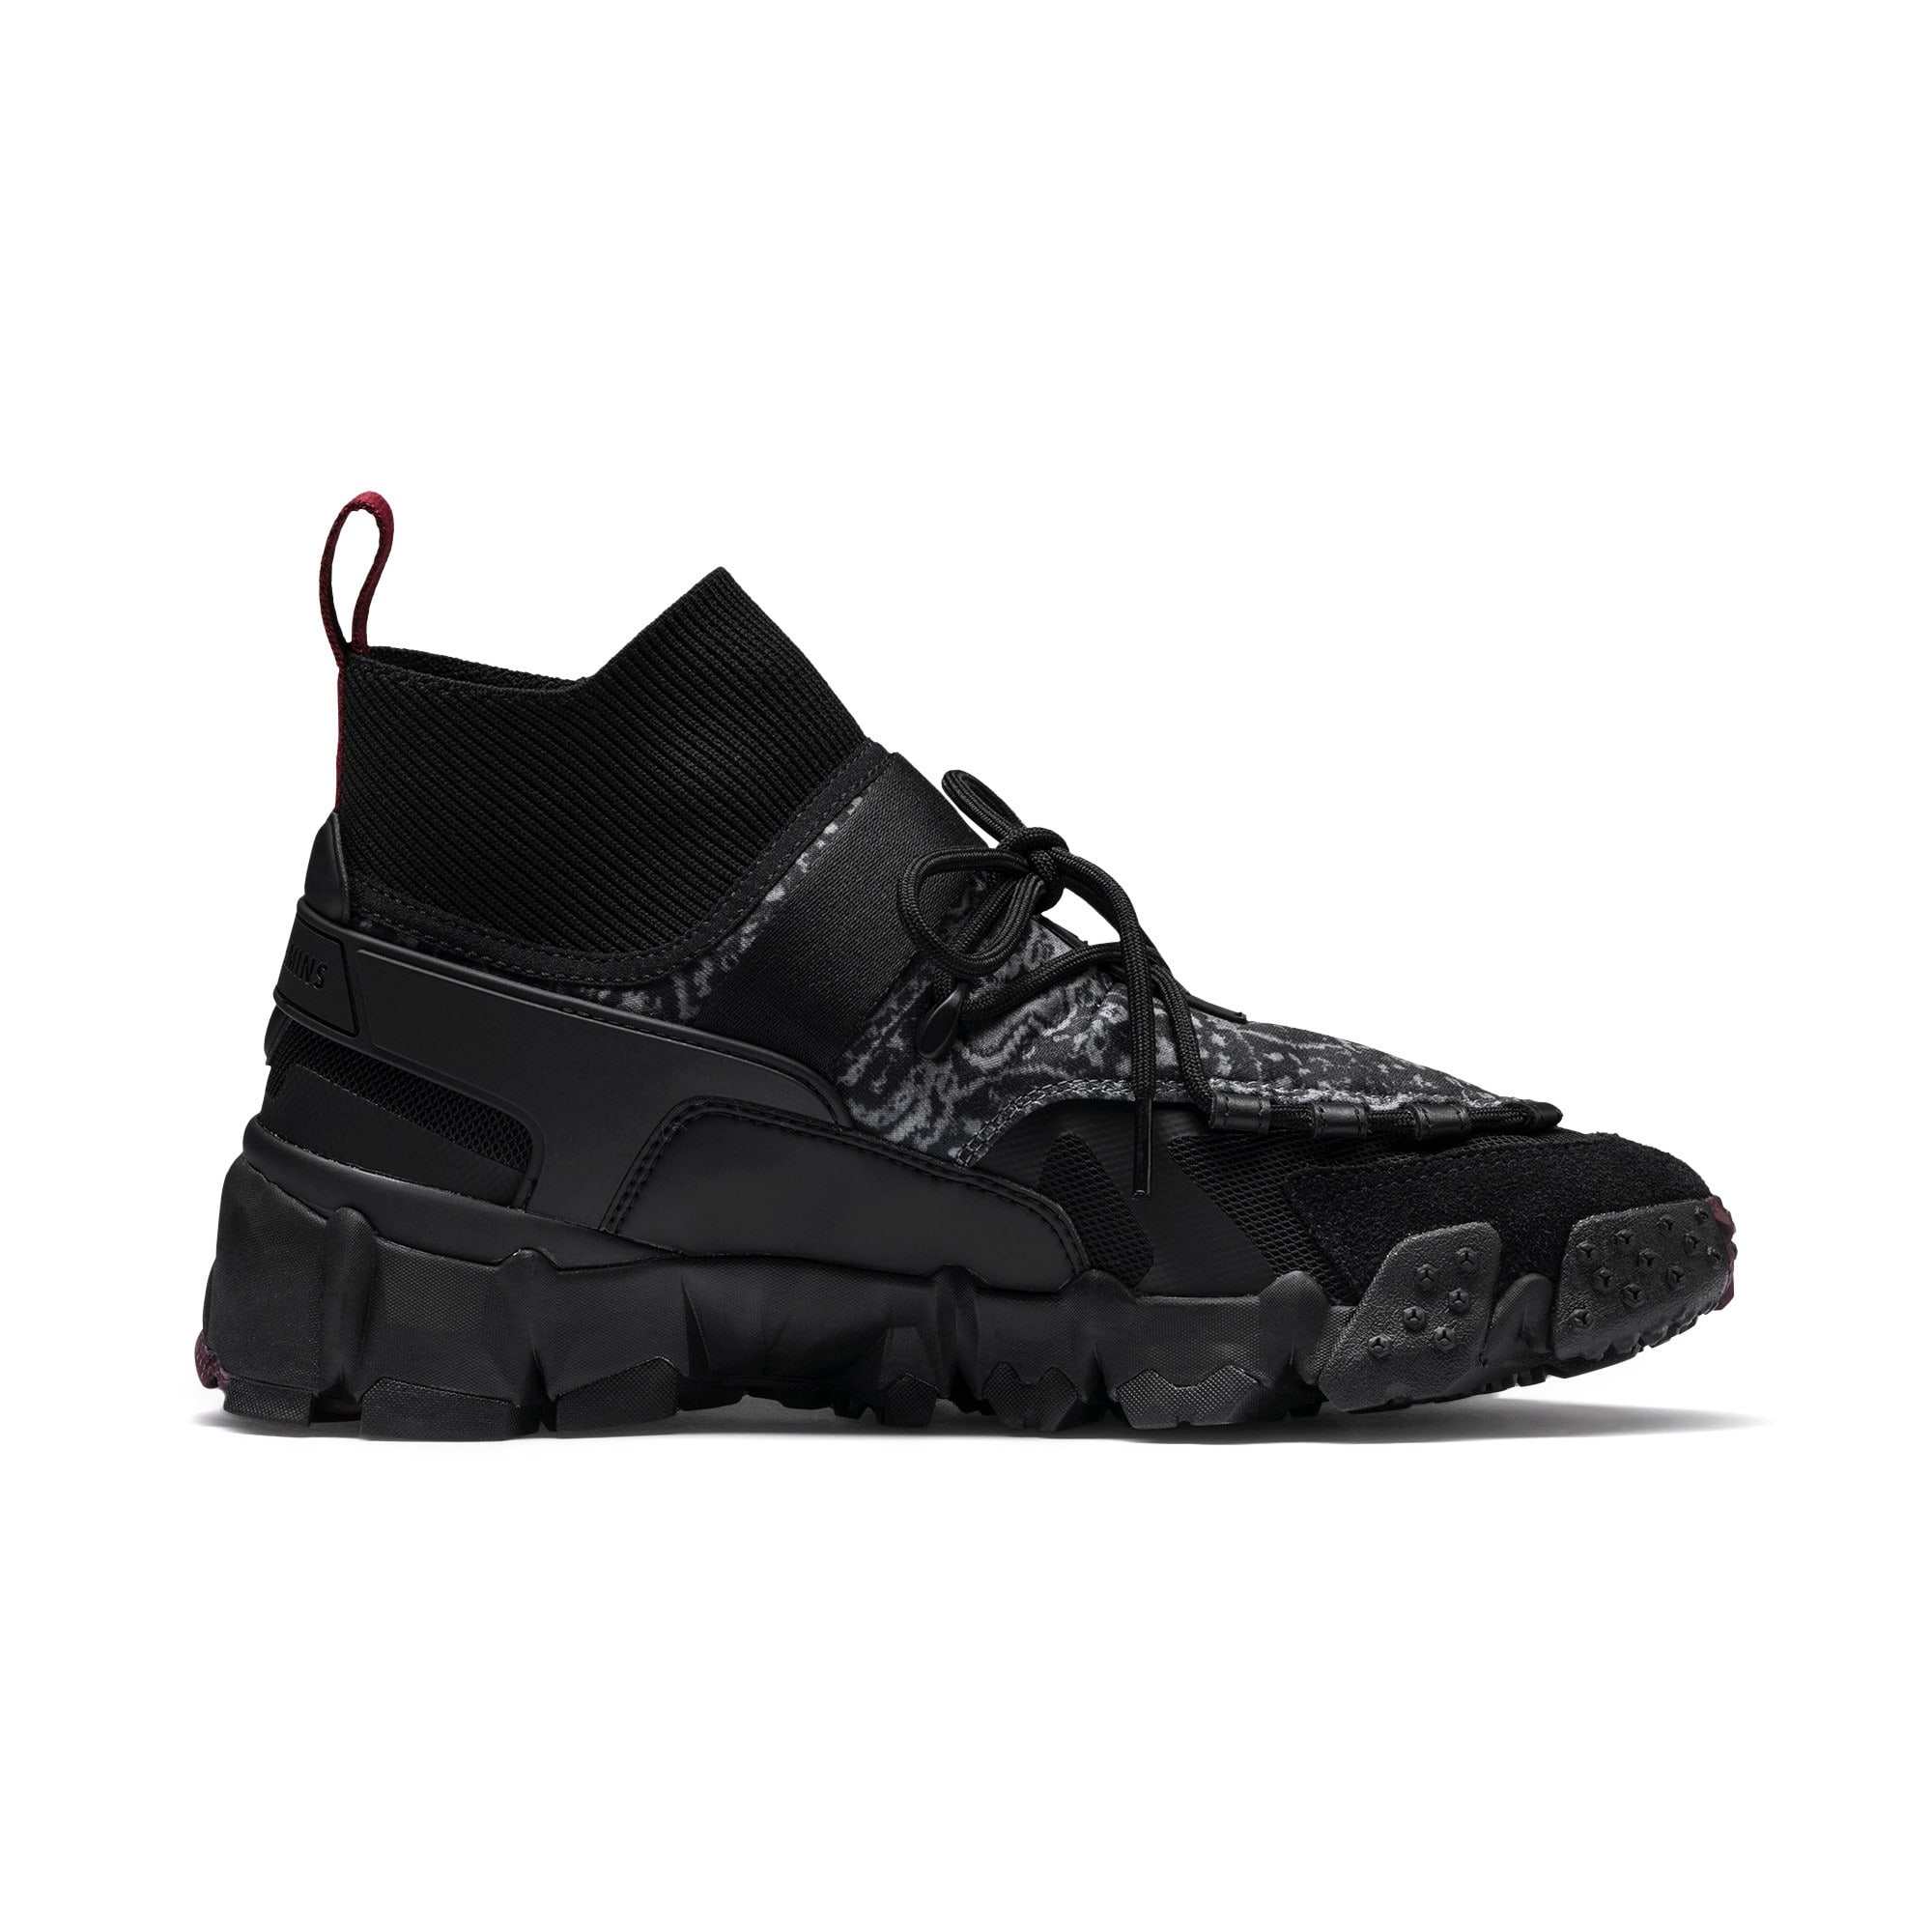 Thumbnail 6 of PUMA x LES BENJAMINS Trailfox Schuhe, Puma Black, medium